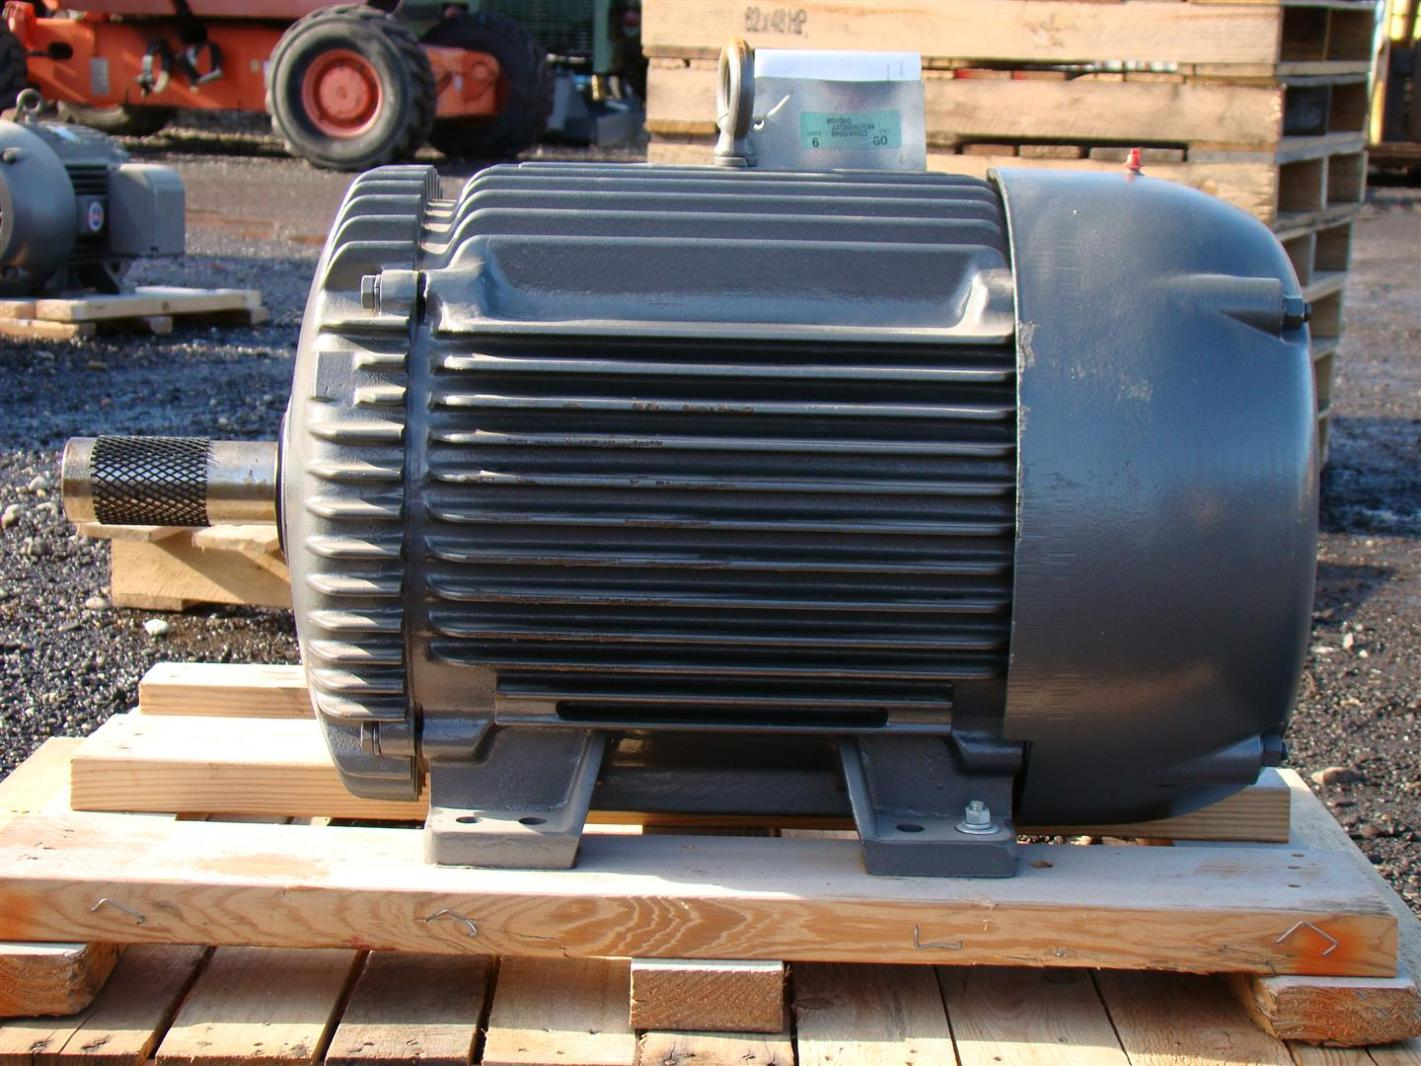 Baldor Industrial Electric Motor 30hp 460v 1760 870rpm